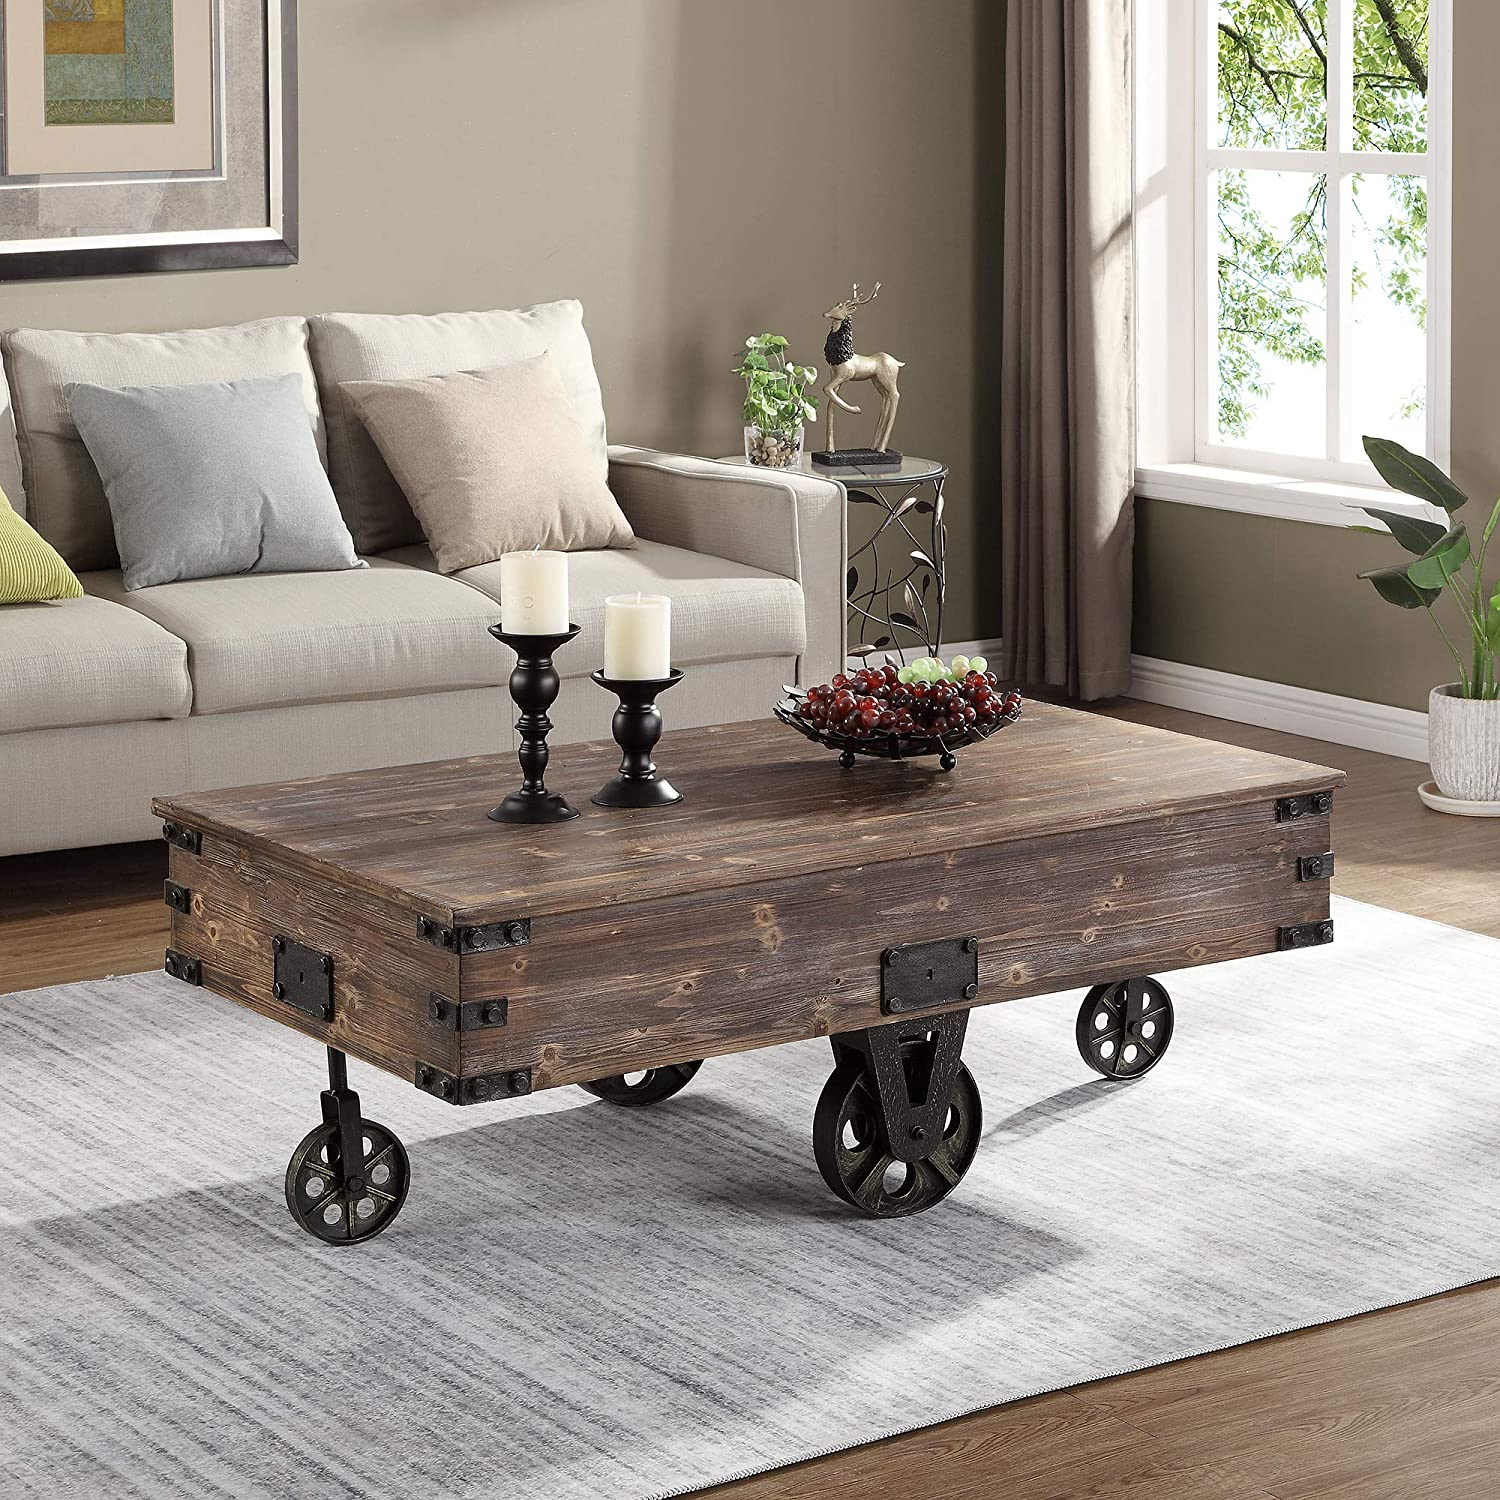 FirsTime & Co. Factory Cart Coffee Accent Table steampunk home decor ideas